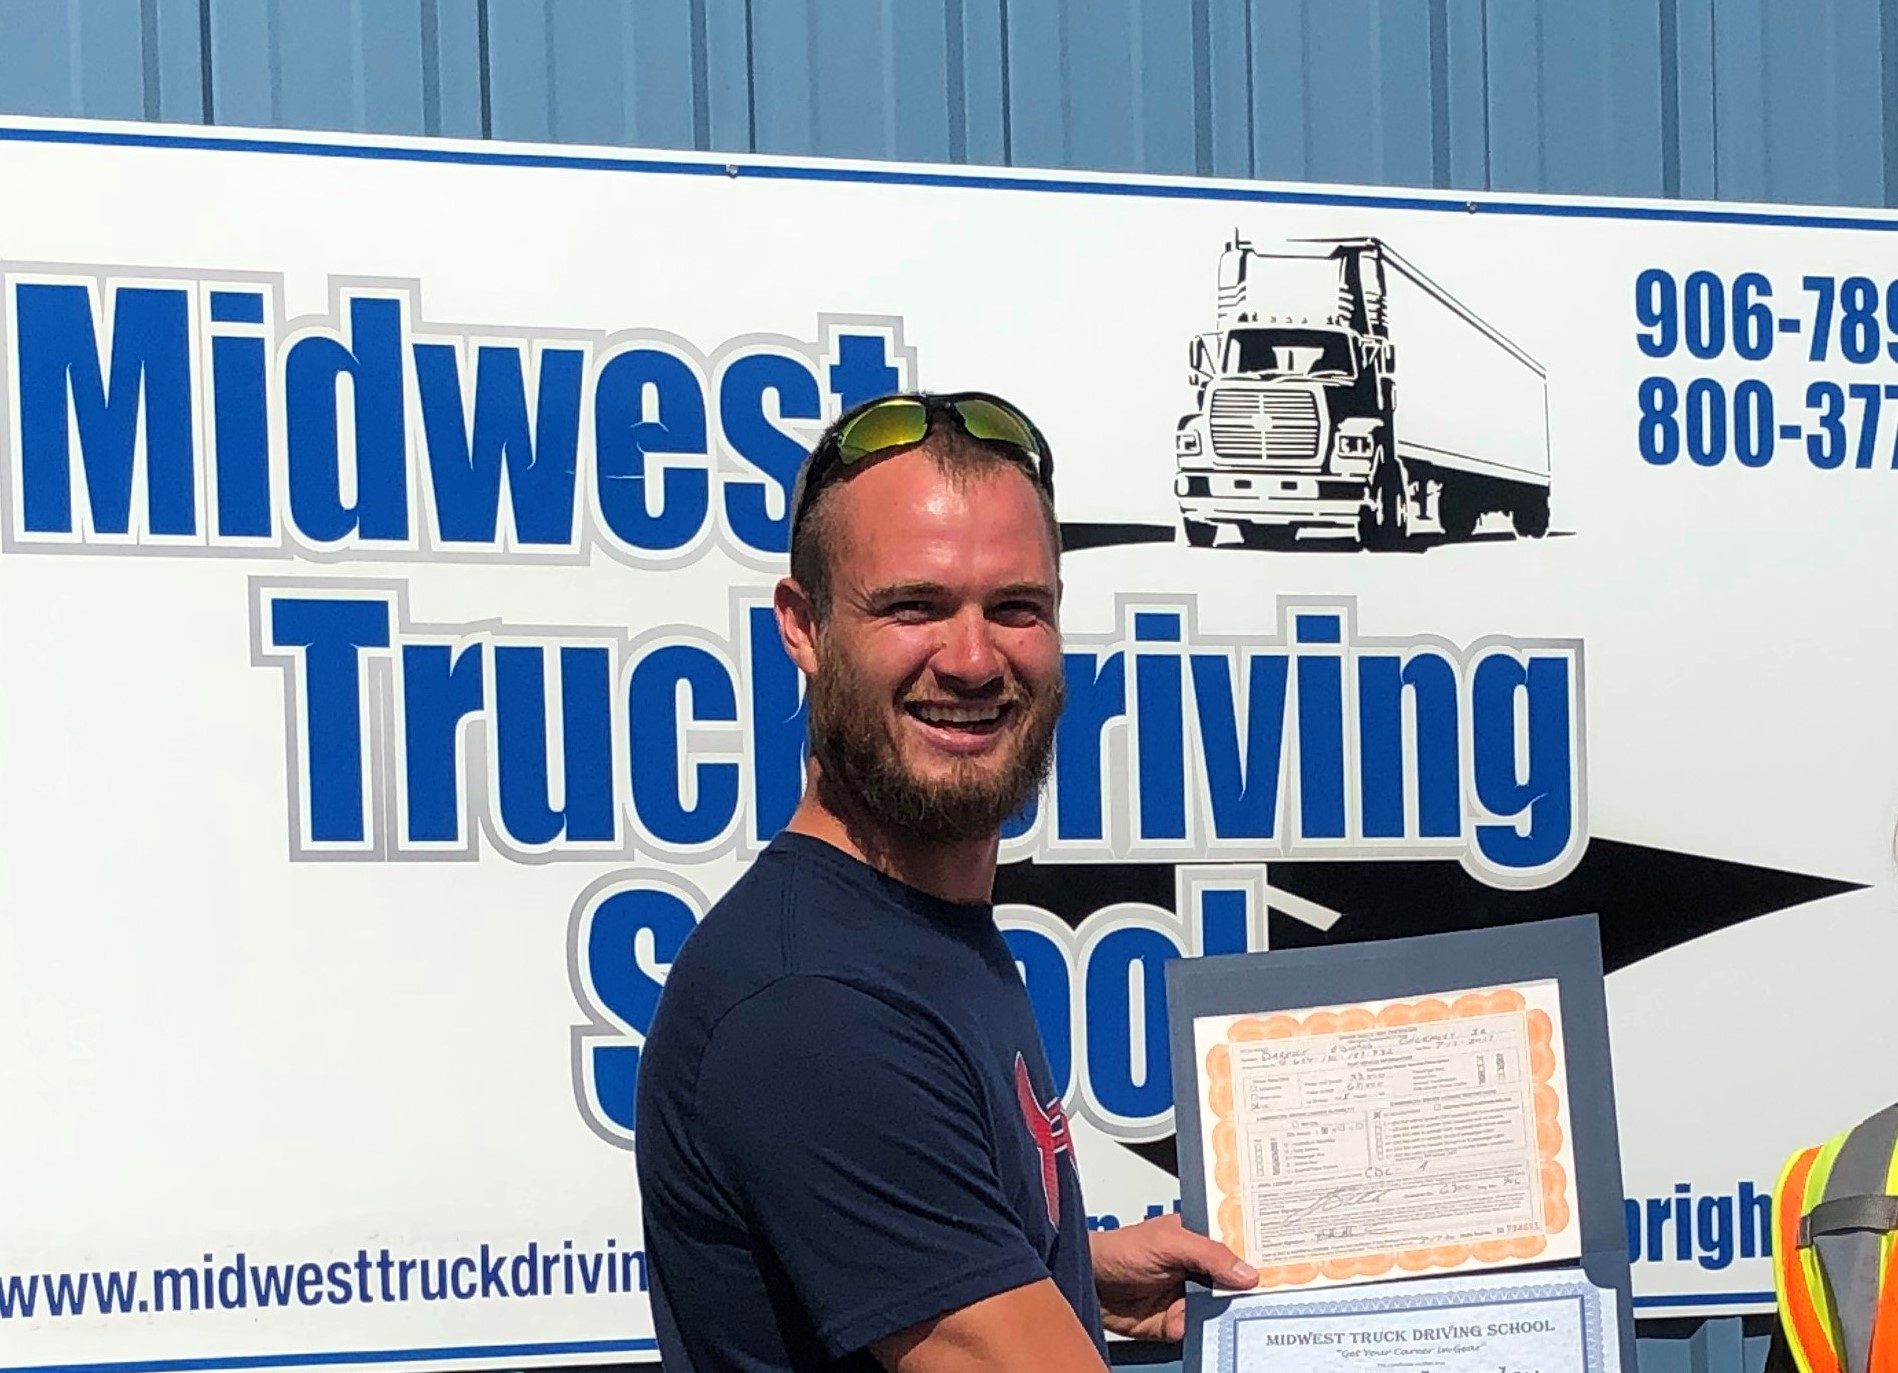 Darelle poses in front of a Midwest Truck Driving Sign with his certificate.